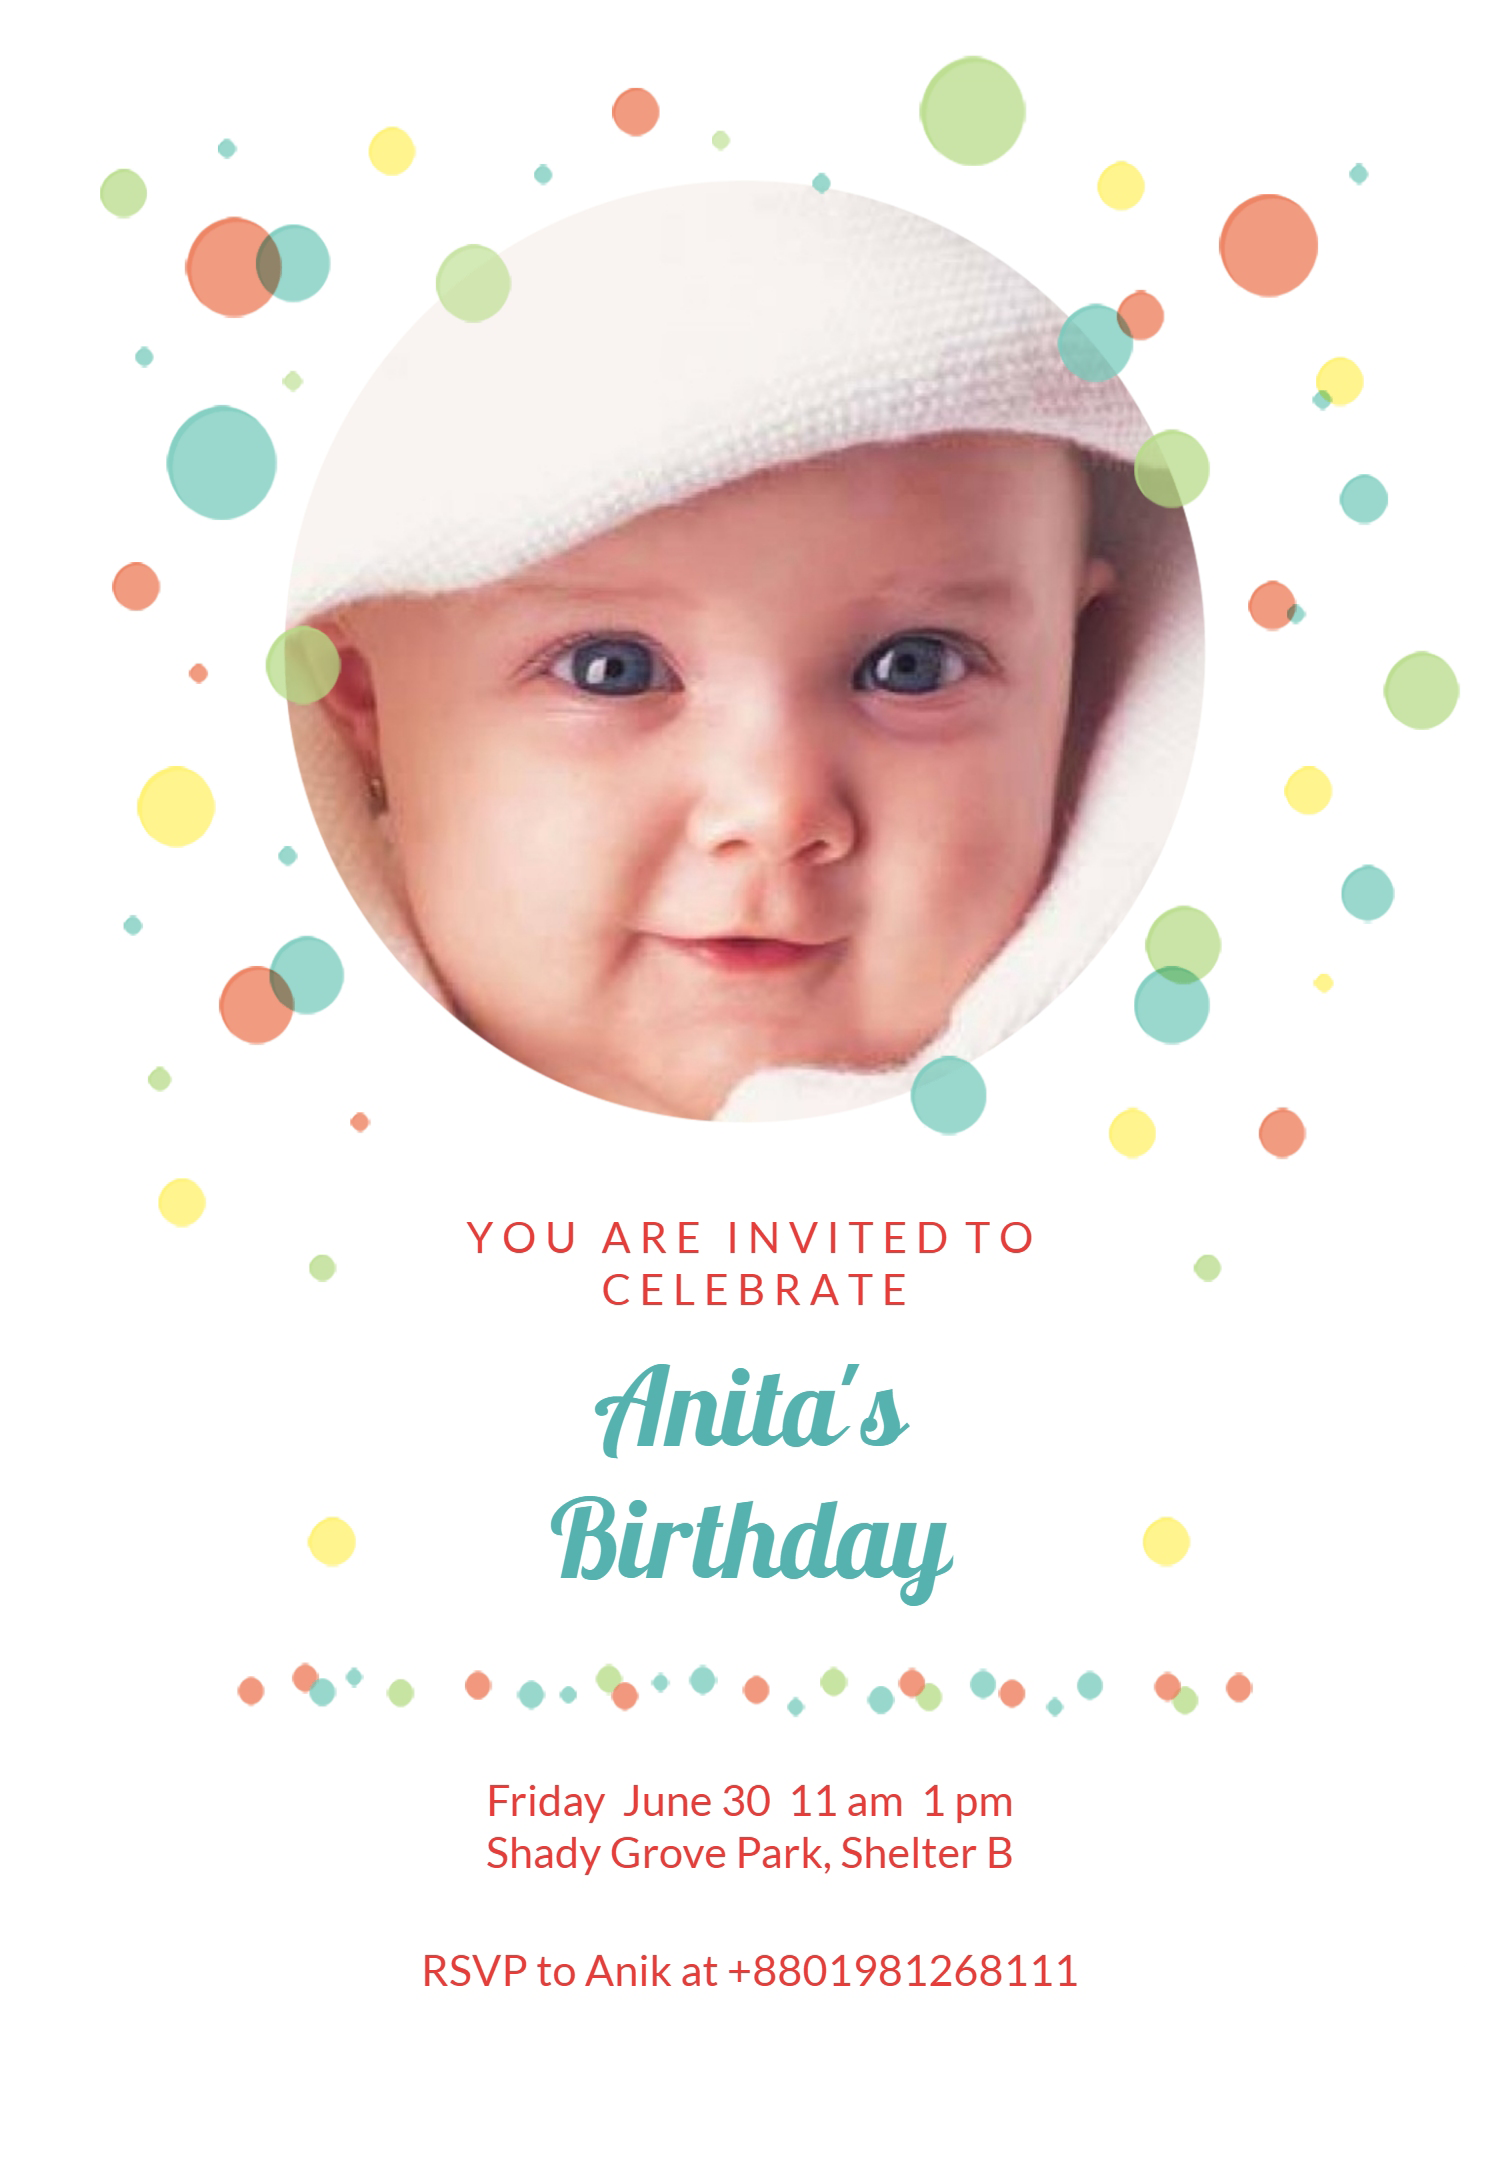 How To Create Birthday Invites For Kids Quora